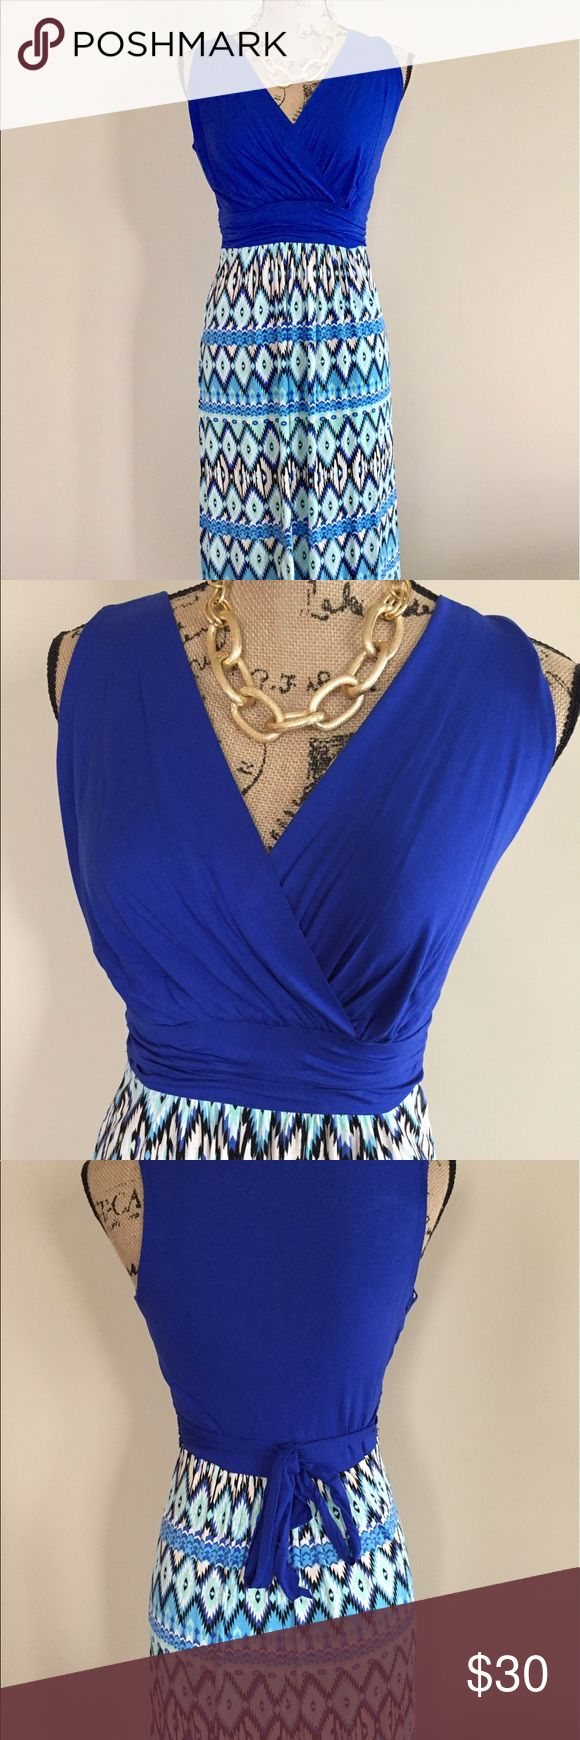 """Royal and aqua blue maxi dress Beautiful maxi dress has a royal blue surplice top with a royal, aqua, and white Aztec print skirt. Banded under bust for shaping with attached sash to tie back. 96% rayon 4% spandex. Size S(0/2-bust 15"""", length 56""""), M(4/6-bust 17"""", length 57""""), L(8/10-bust 18"""", length 59""""). **I'm 5'9"""" 34D modeling the S. Dresses Maxi"""